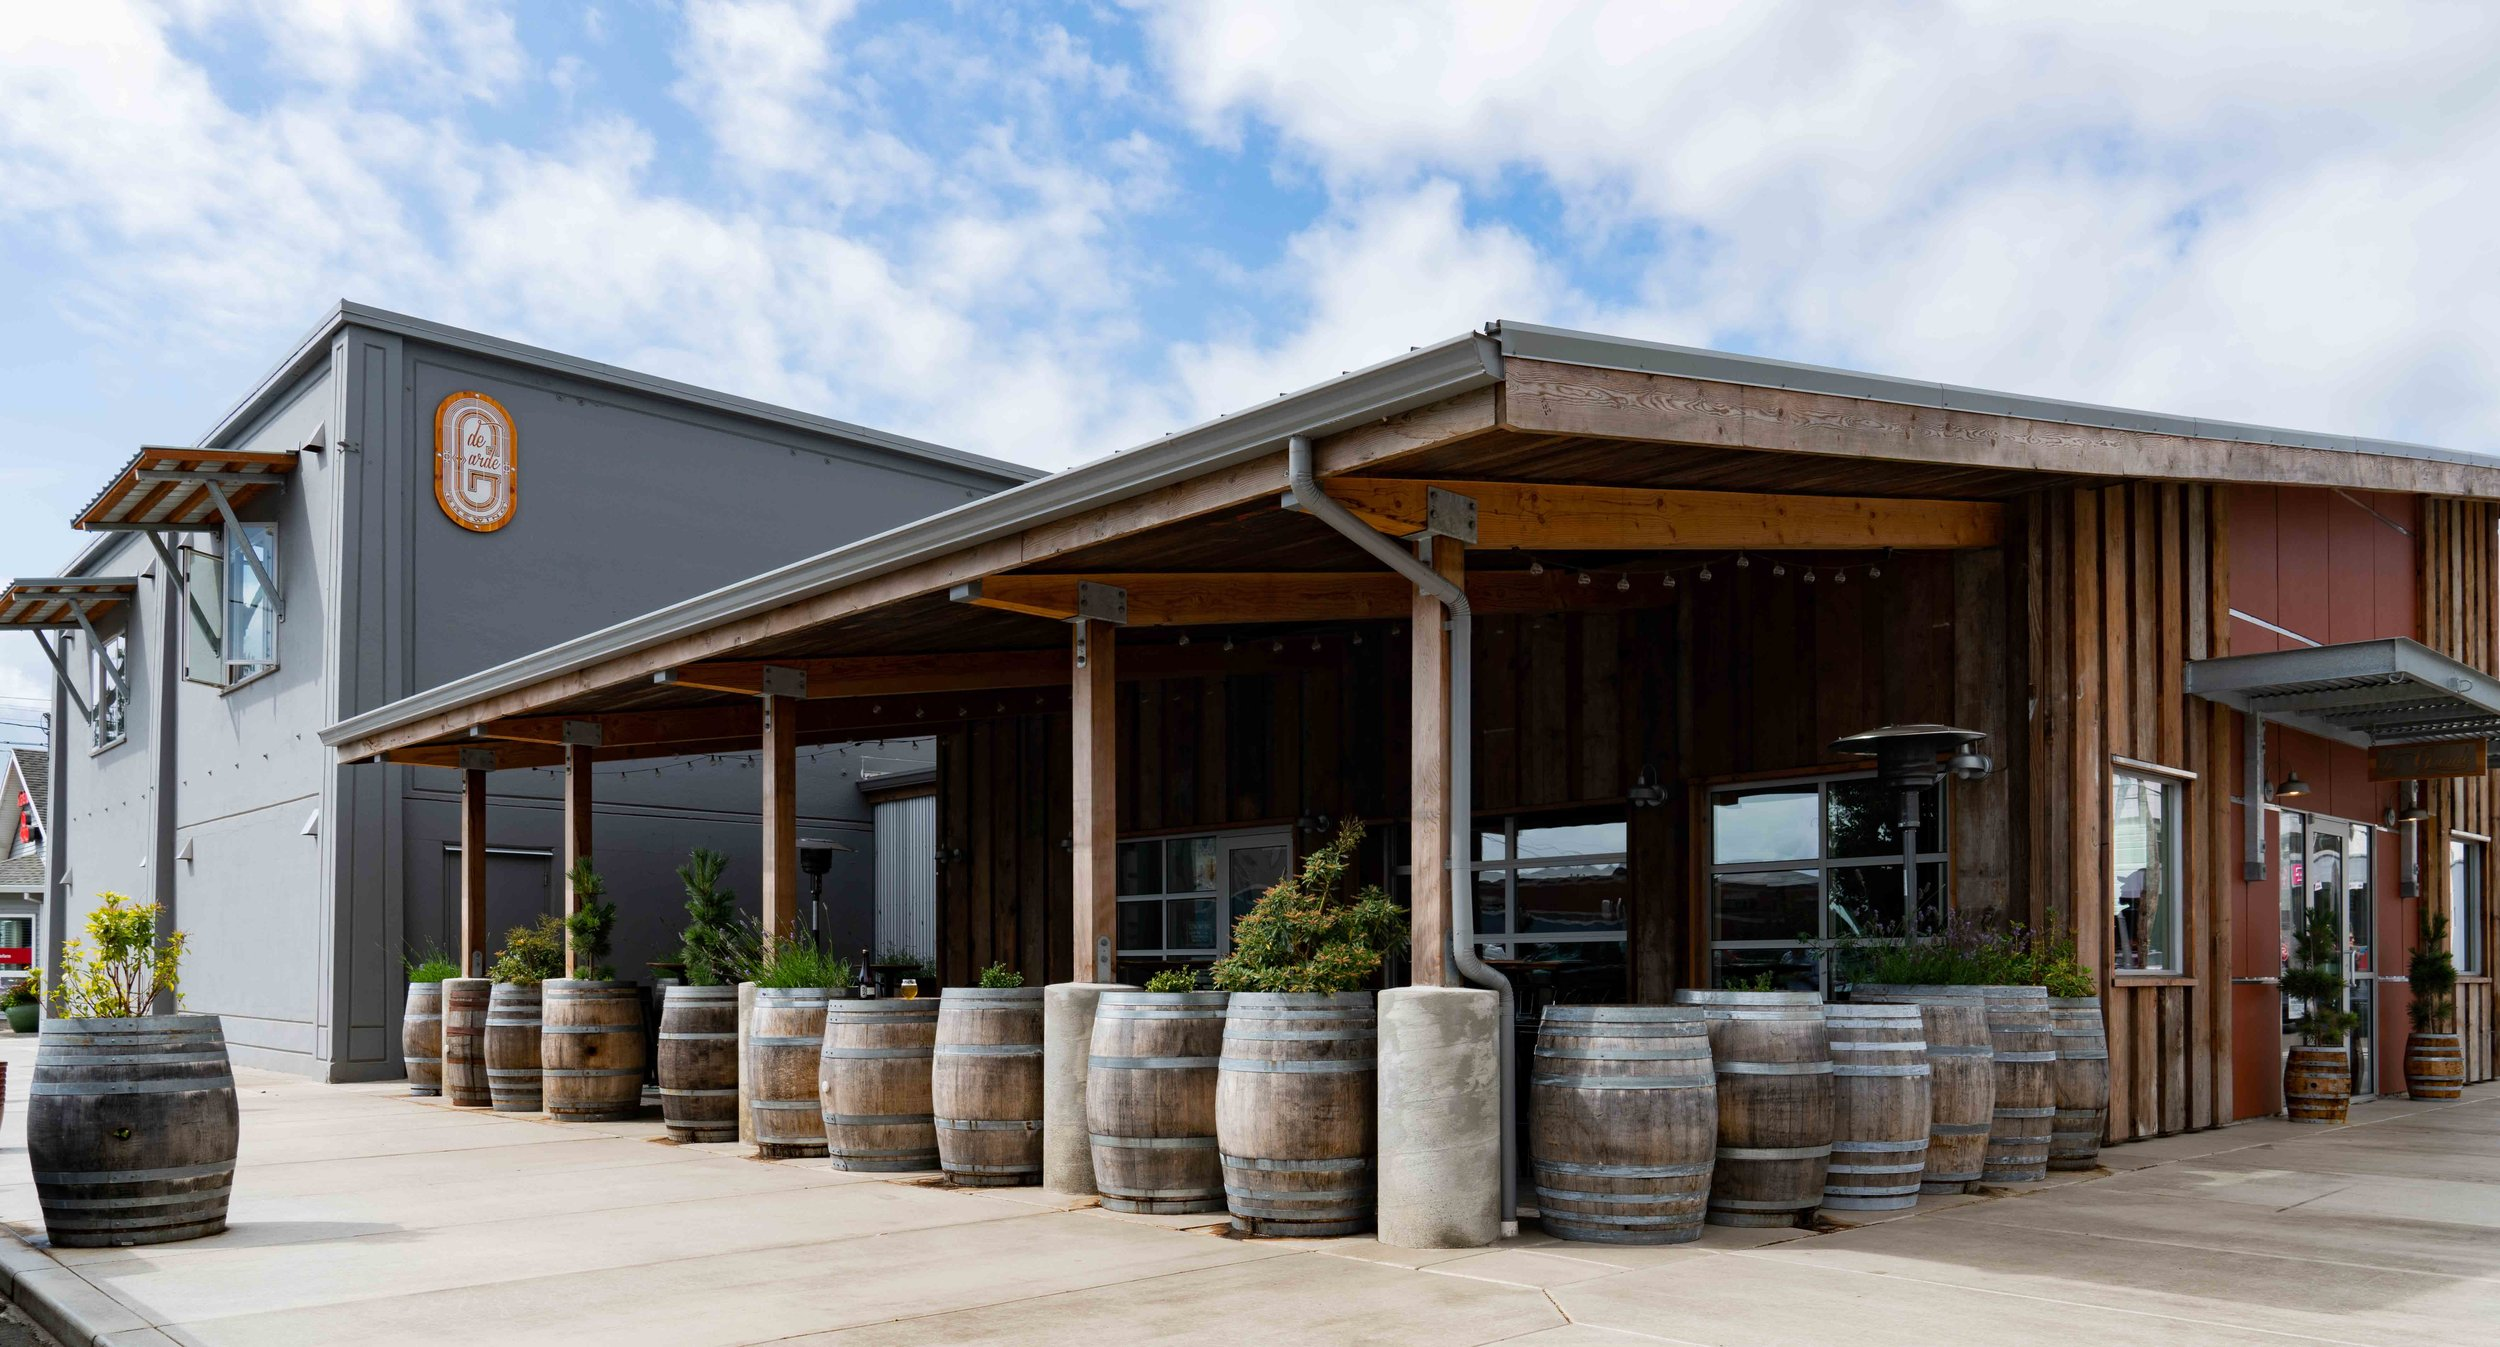 The brand new de Garde brewery and tasting room